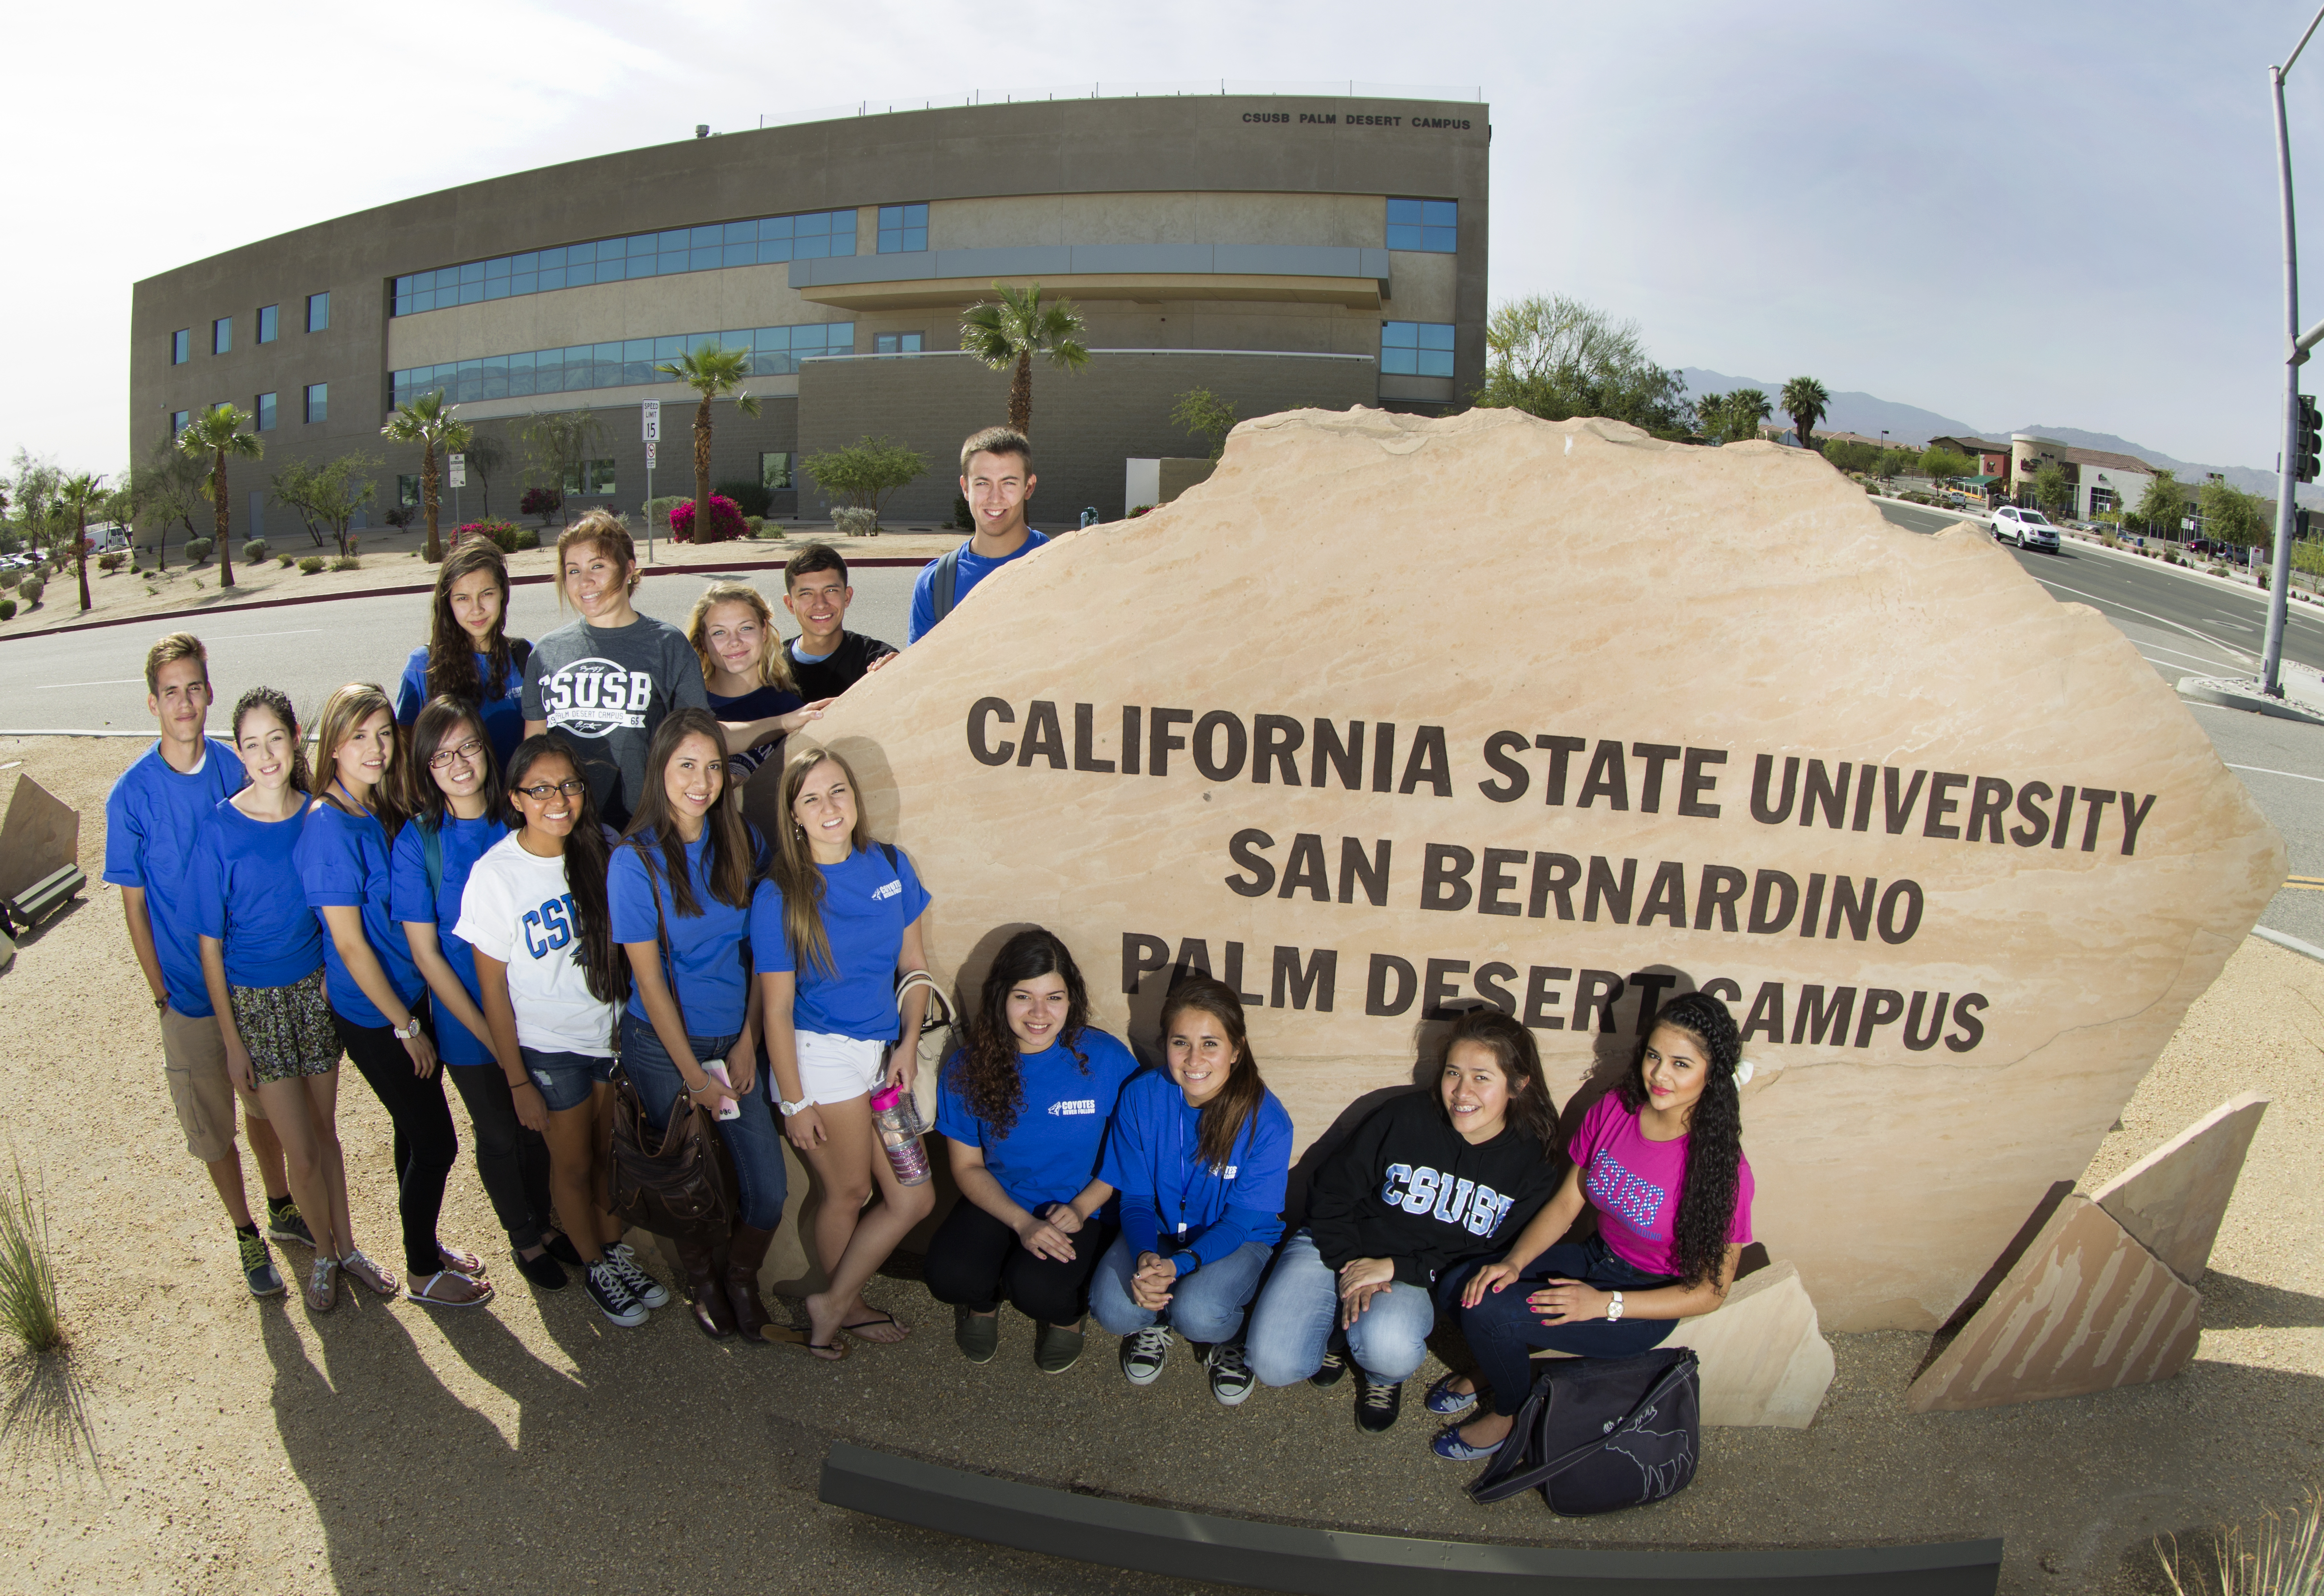 California State University, San Bernardino at Palm Desert